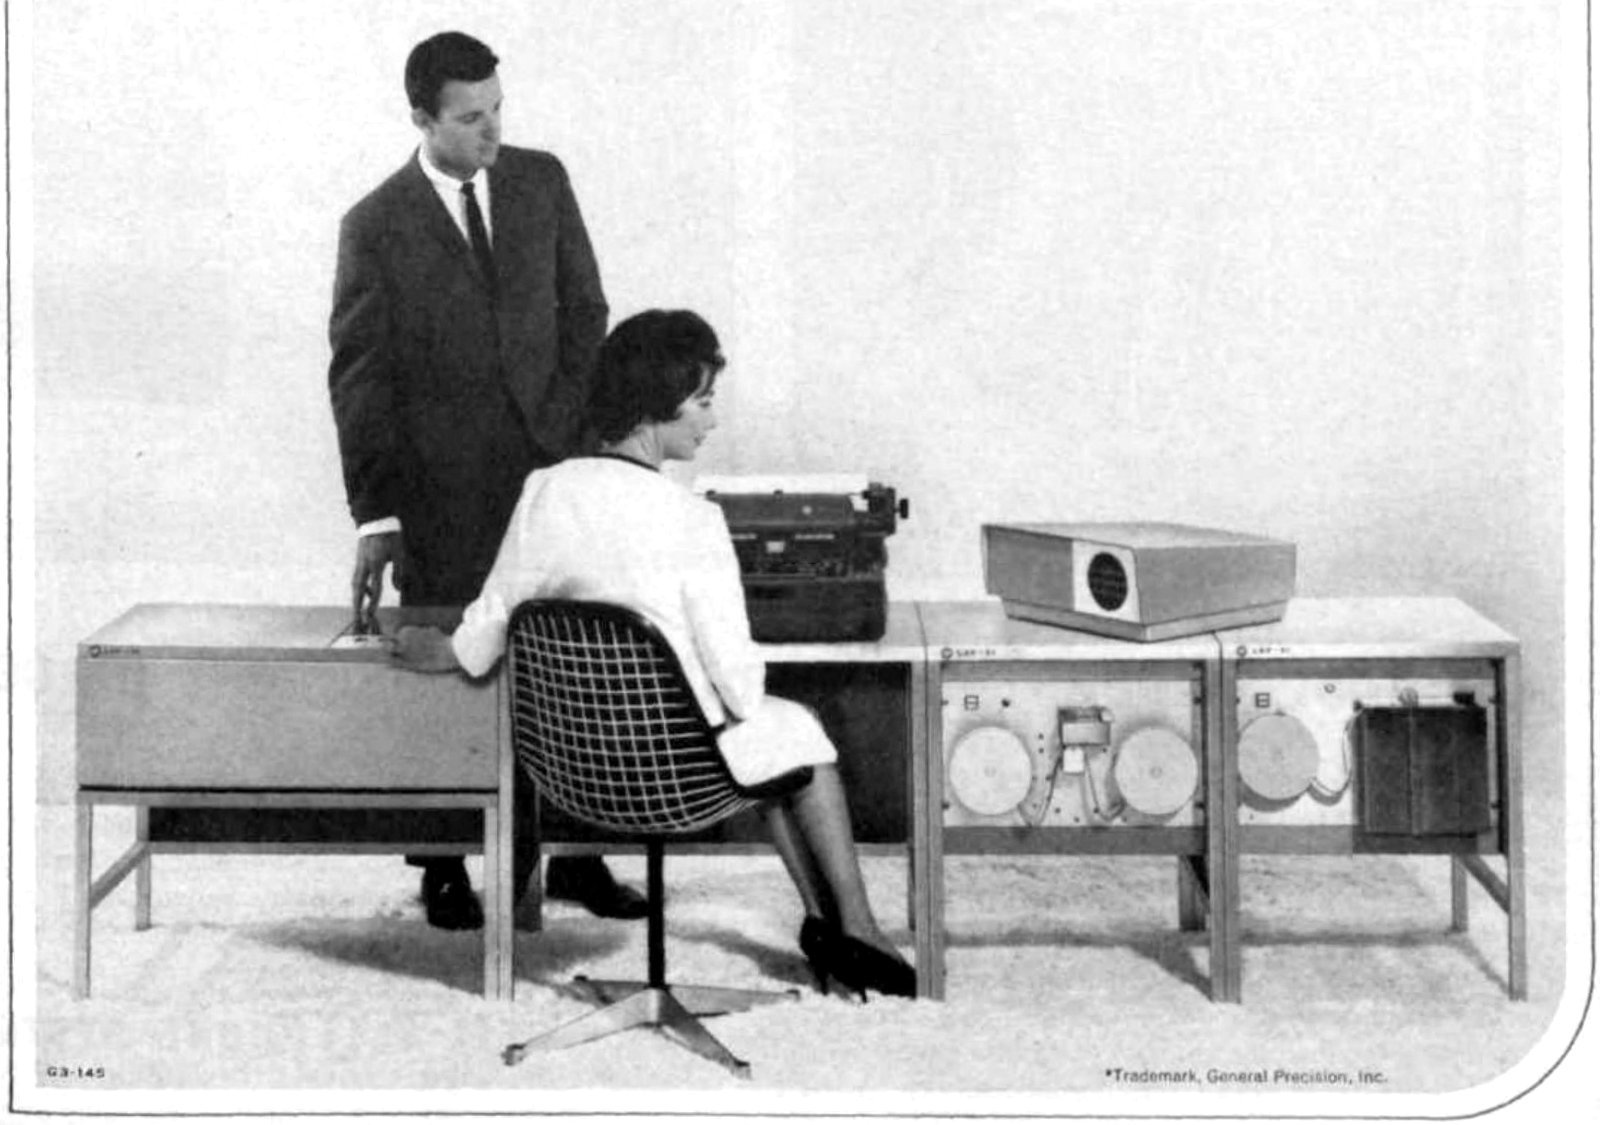 Vintage computers in business offices (1963)